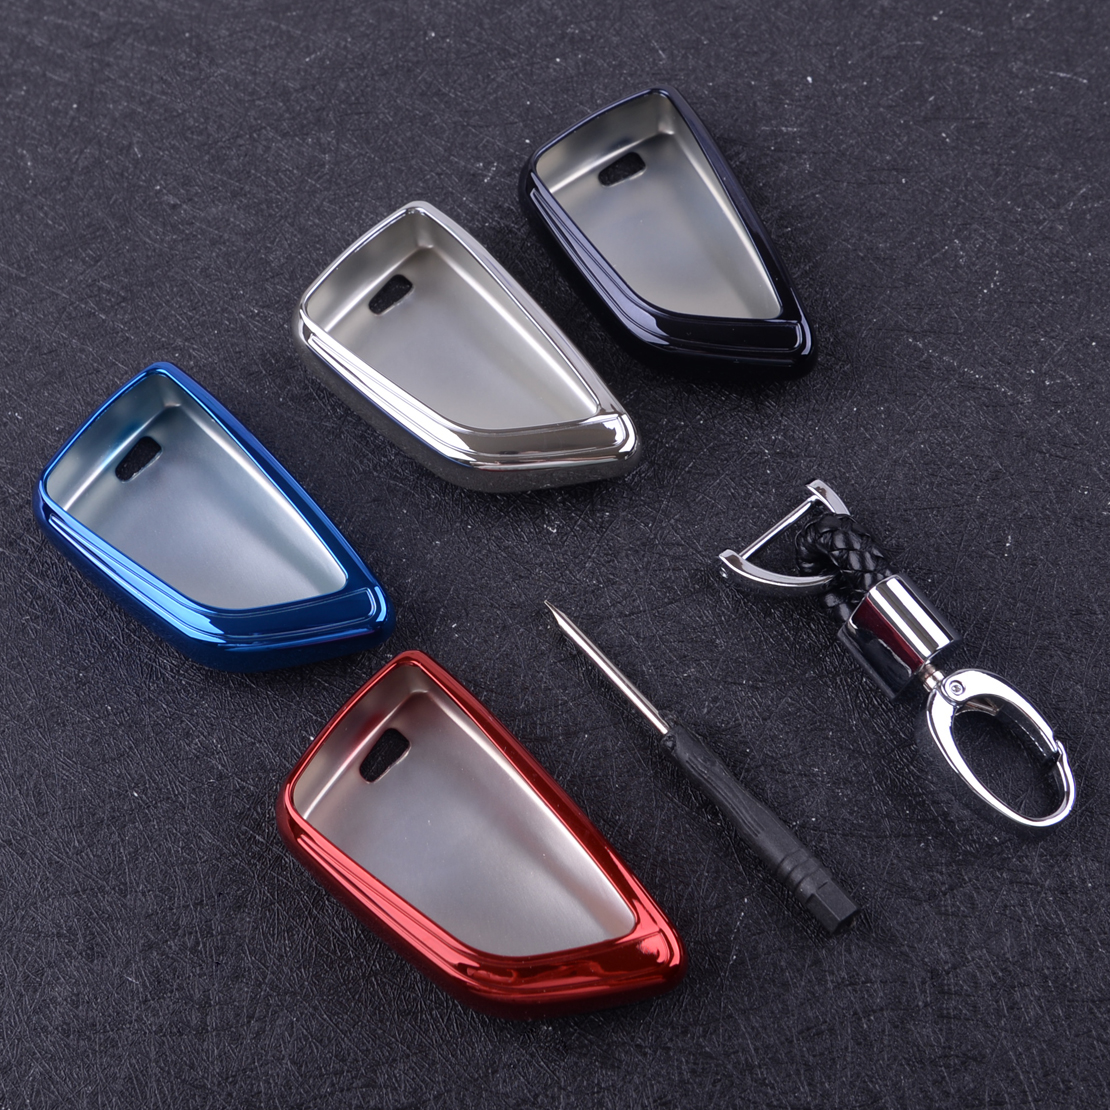 DWCX 4 Colors TPU Car Key Chain Fob Cover Case Holder with Screwdriver Fit for BMW 2 3 5 6 7 Series X1 X5 X6 Accessories